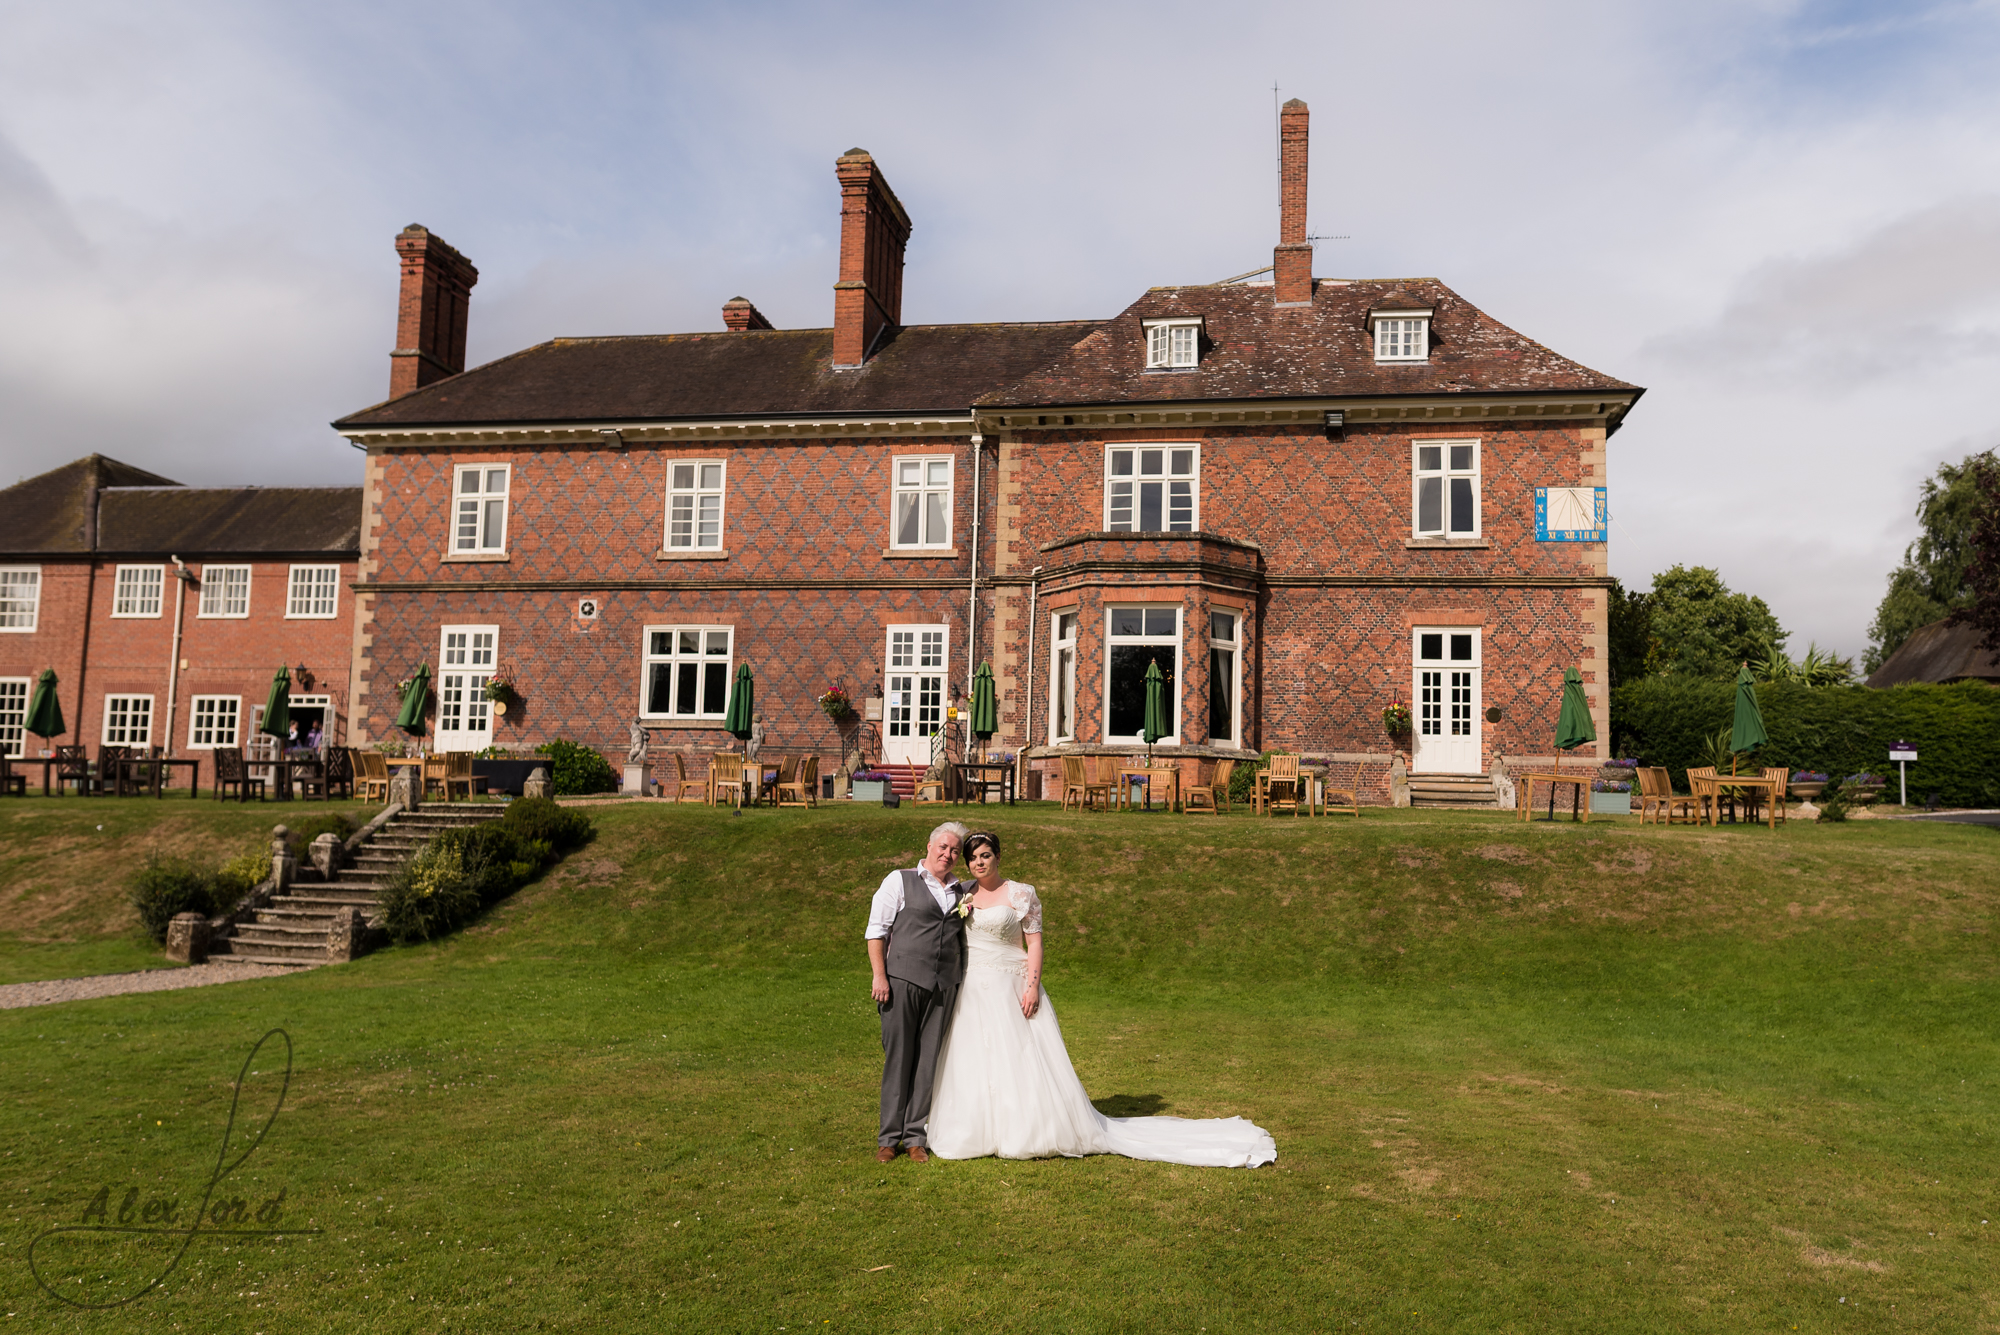 the bride and bride stand majestically in front of their wedding venue on a hot summers day